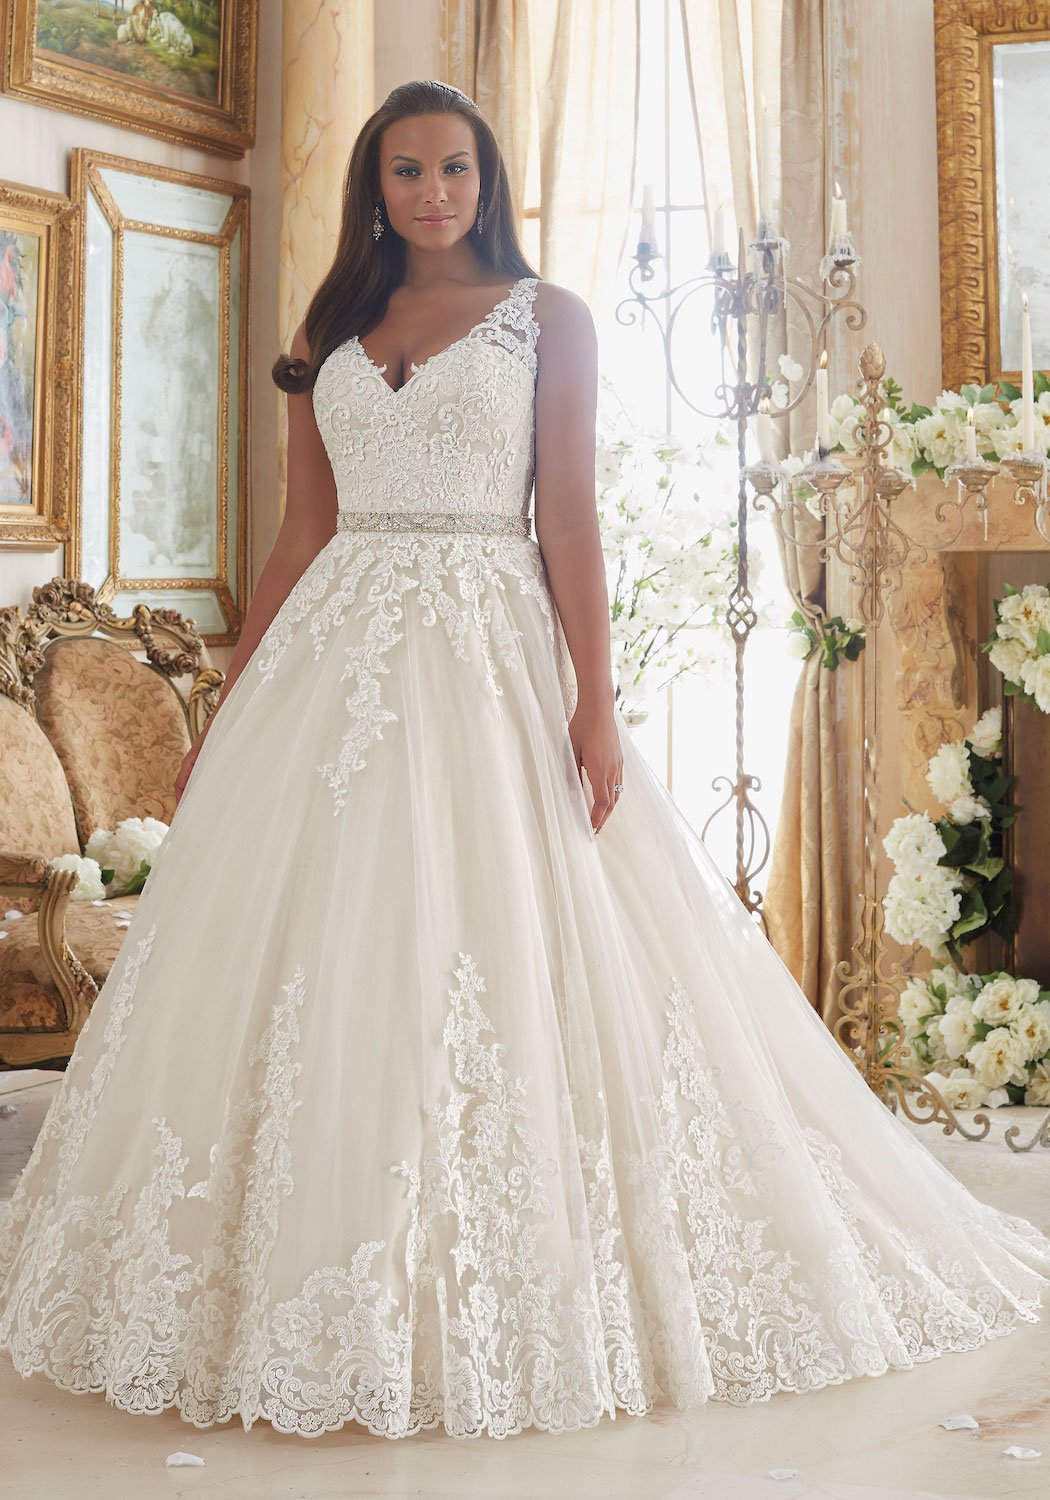 mori-lee-plus-size-wedding-dress-ball-gown